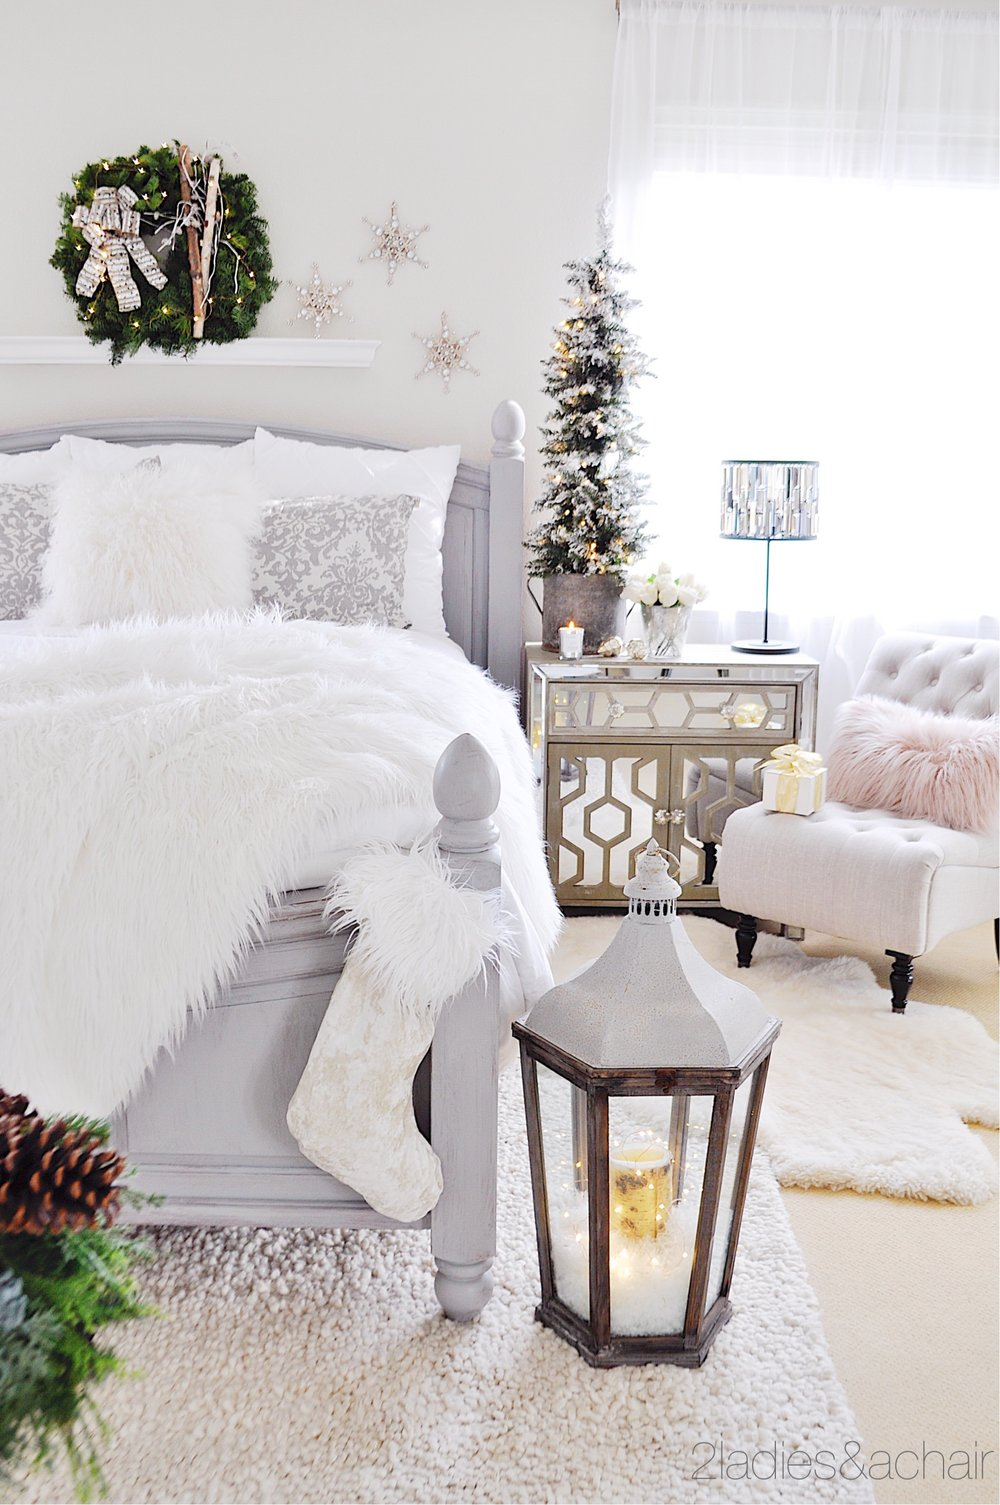 Simple Christmas Decor Ideas For Your Bedroom — 14 Ladies & A Chair